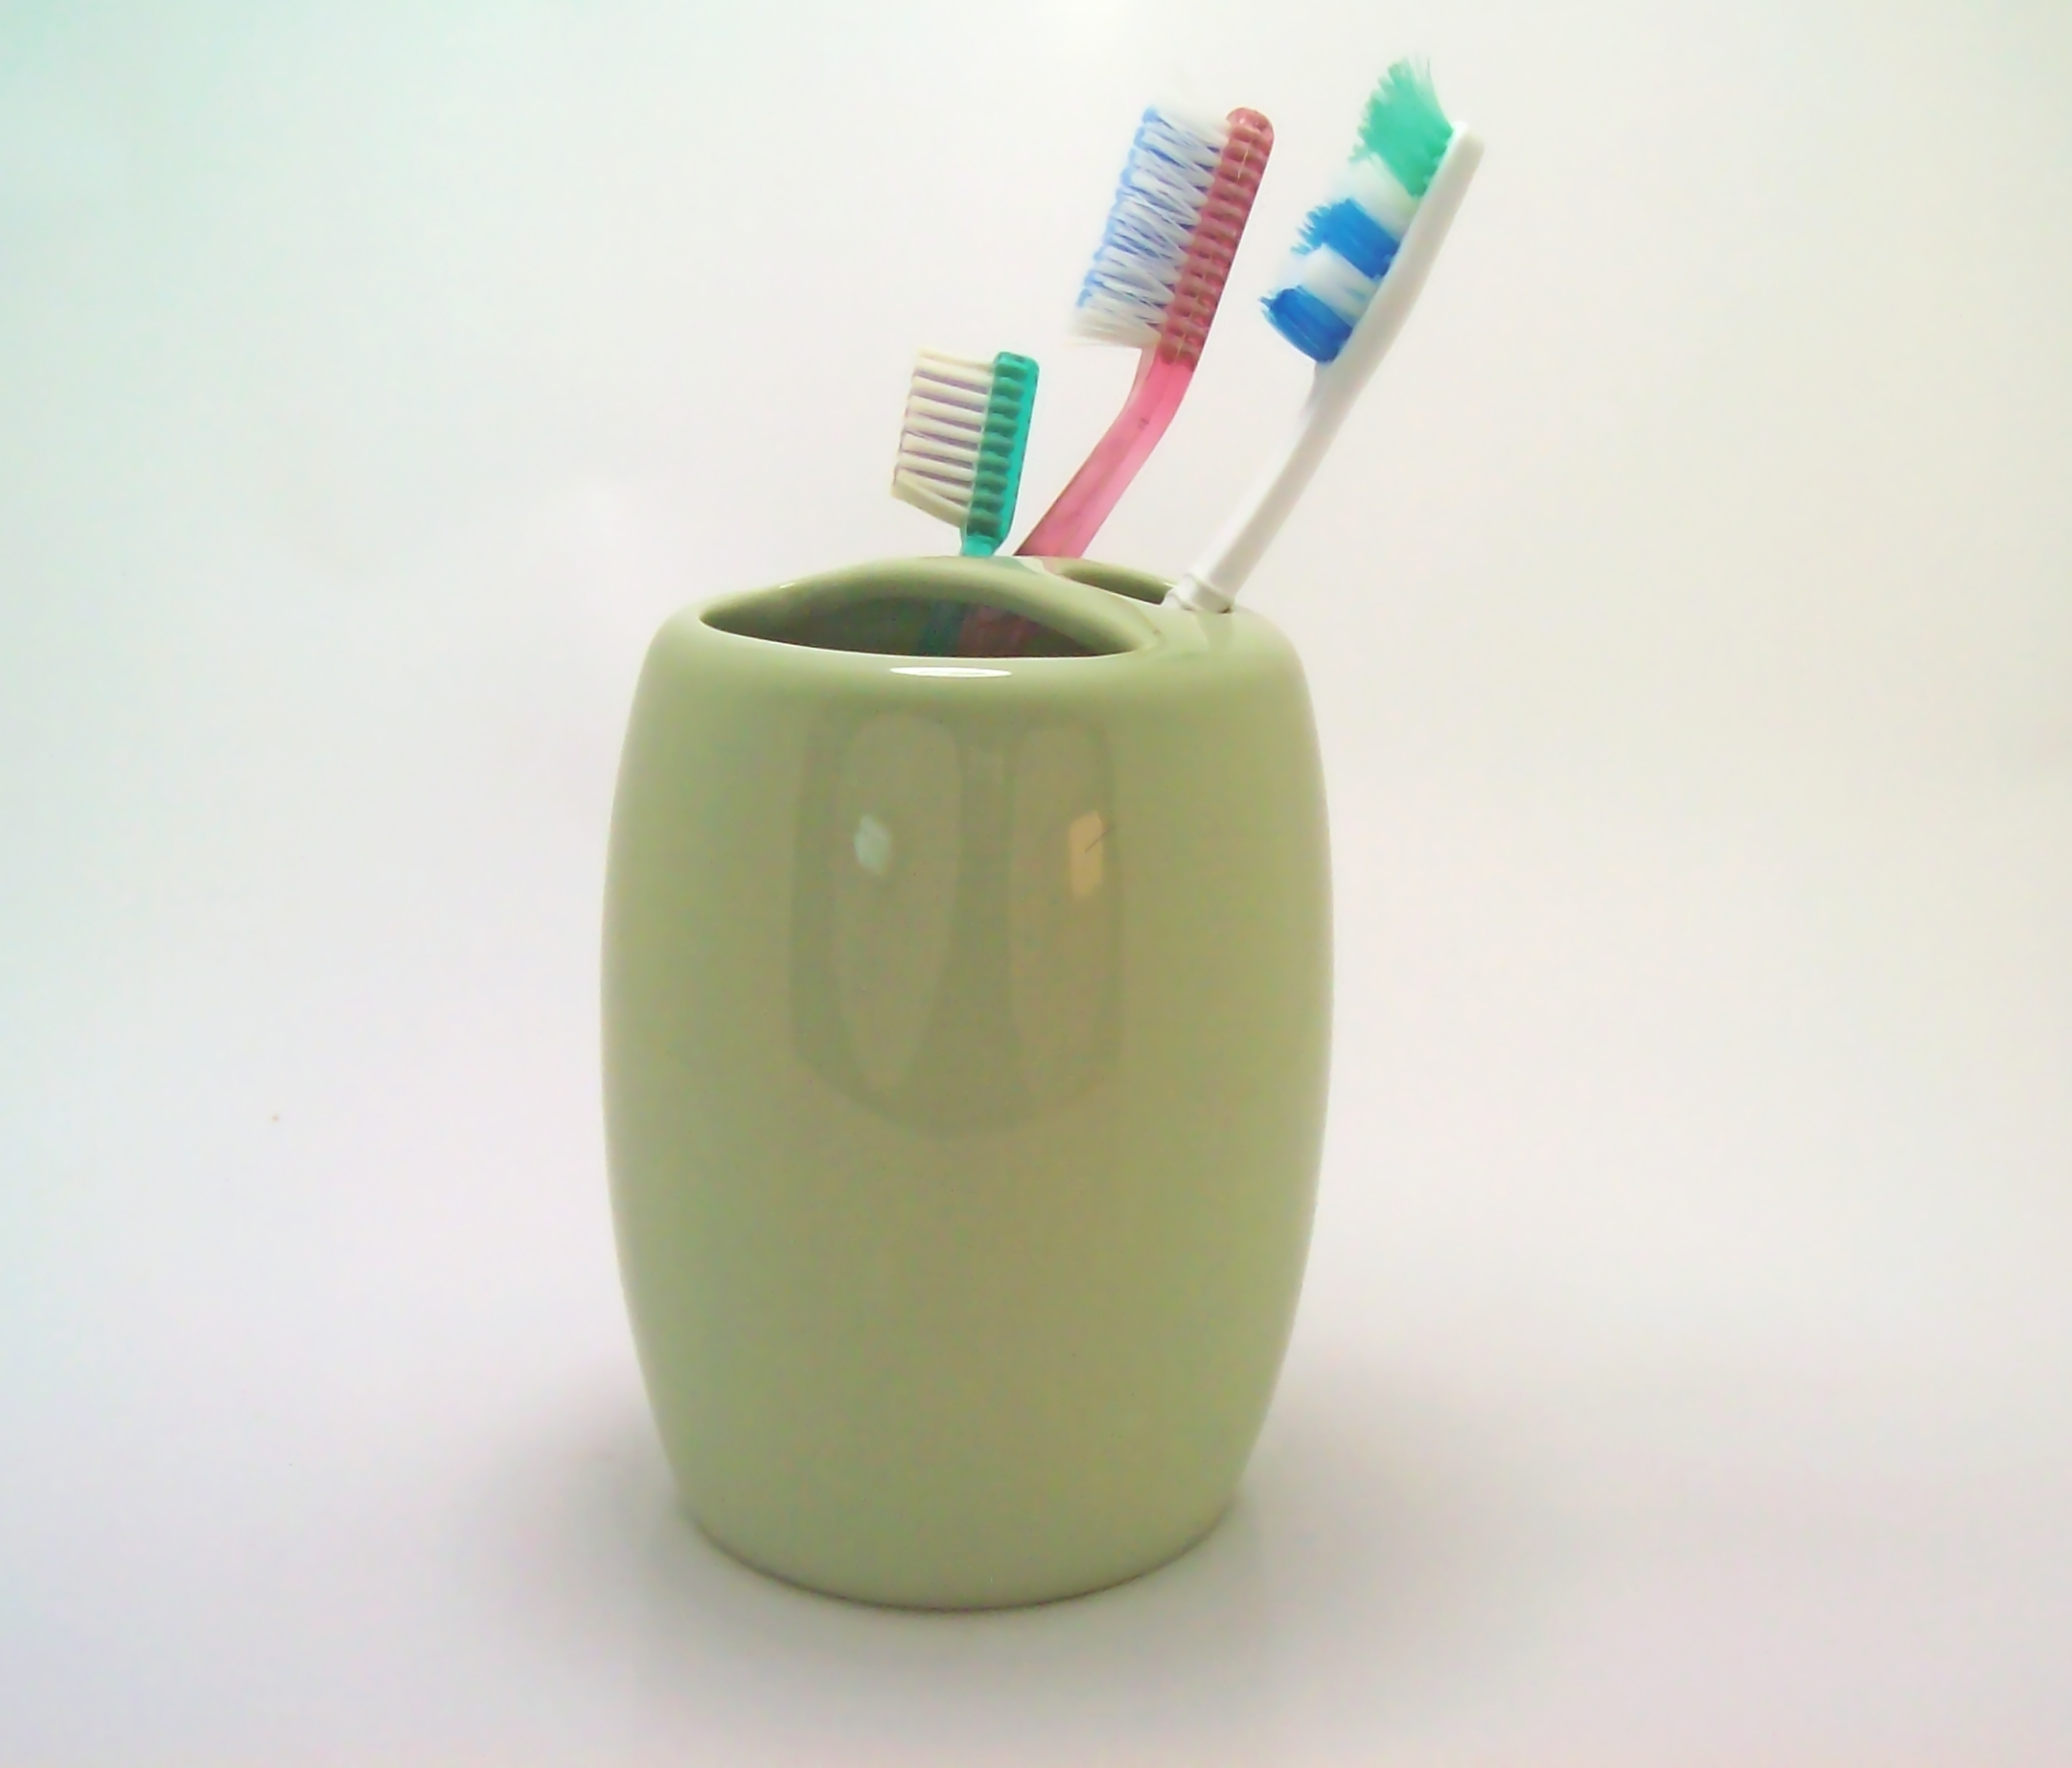 Toothbrushes, Blue, Care, Color, Colorful, HQ Photo